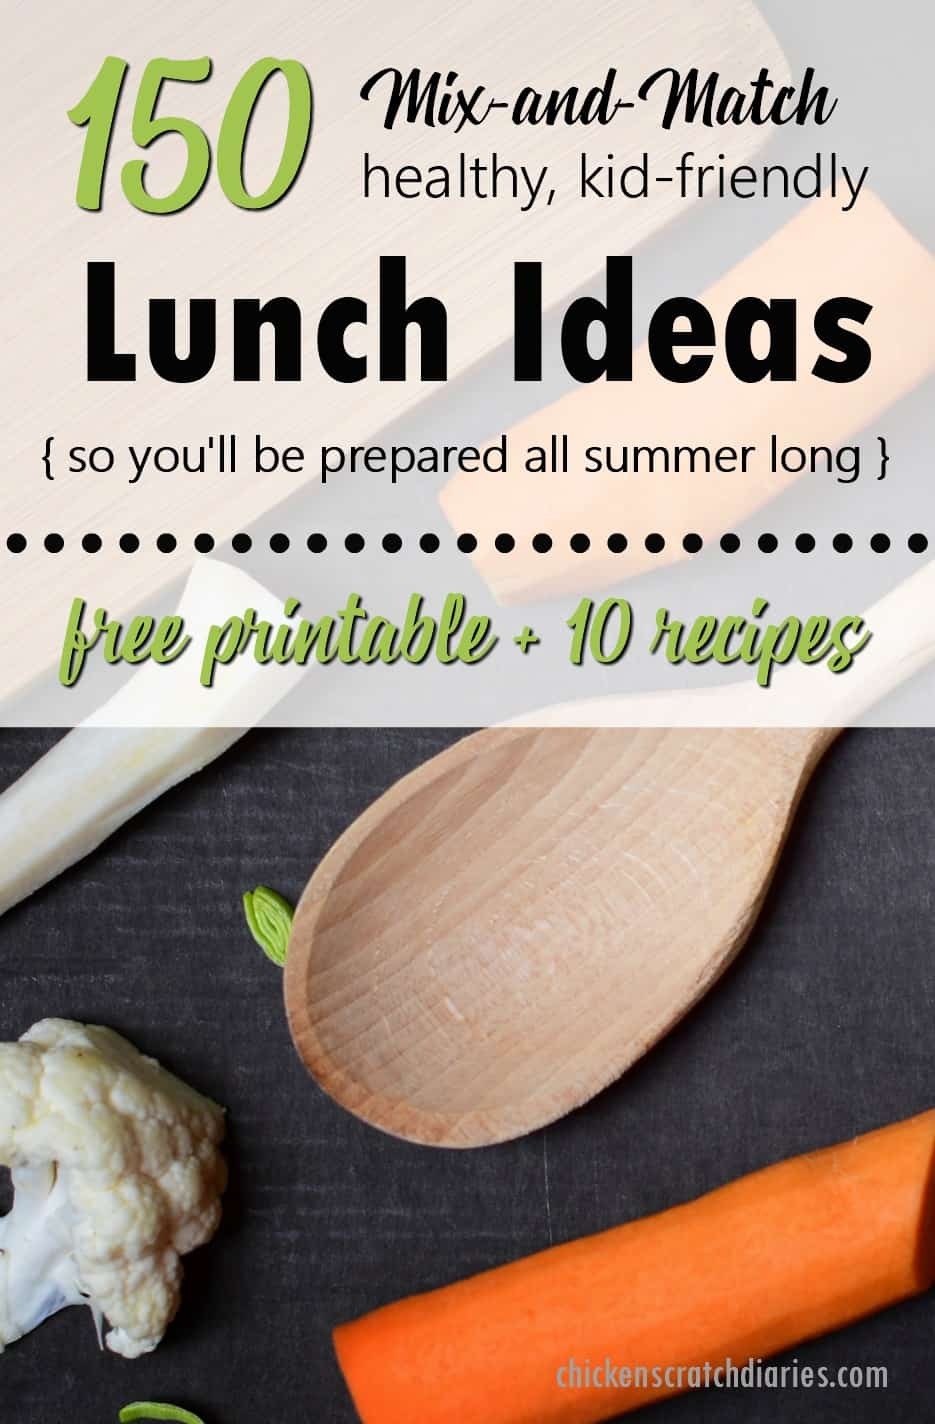 Summer lunch ideas for kids - easy, healthy and stress-free! Love this simple guide packed full of options to take out the guesswork of planning lunches - from school year through summertime! #Lunch #MealPlanning #Kids #Summer